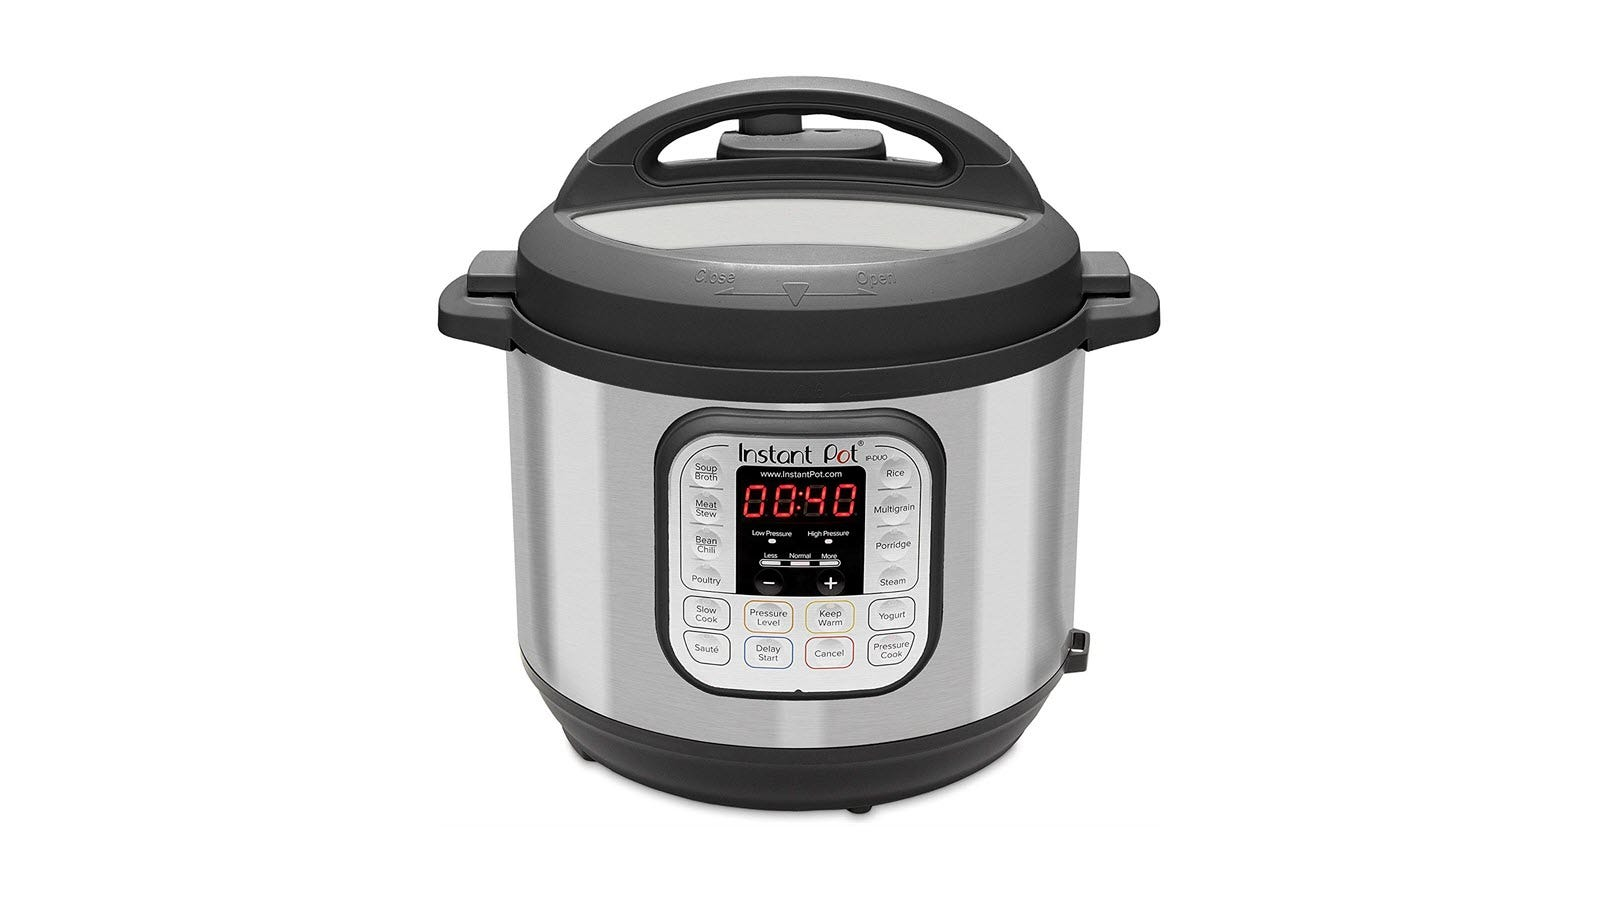 An Instant Pot 7 in 1 pressure cooker, with 40 minutes on the timer.